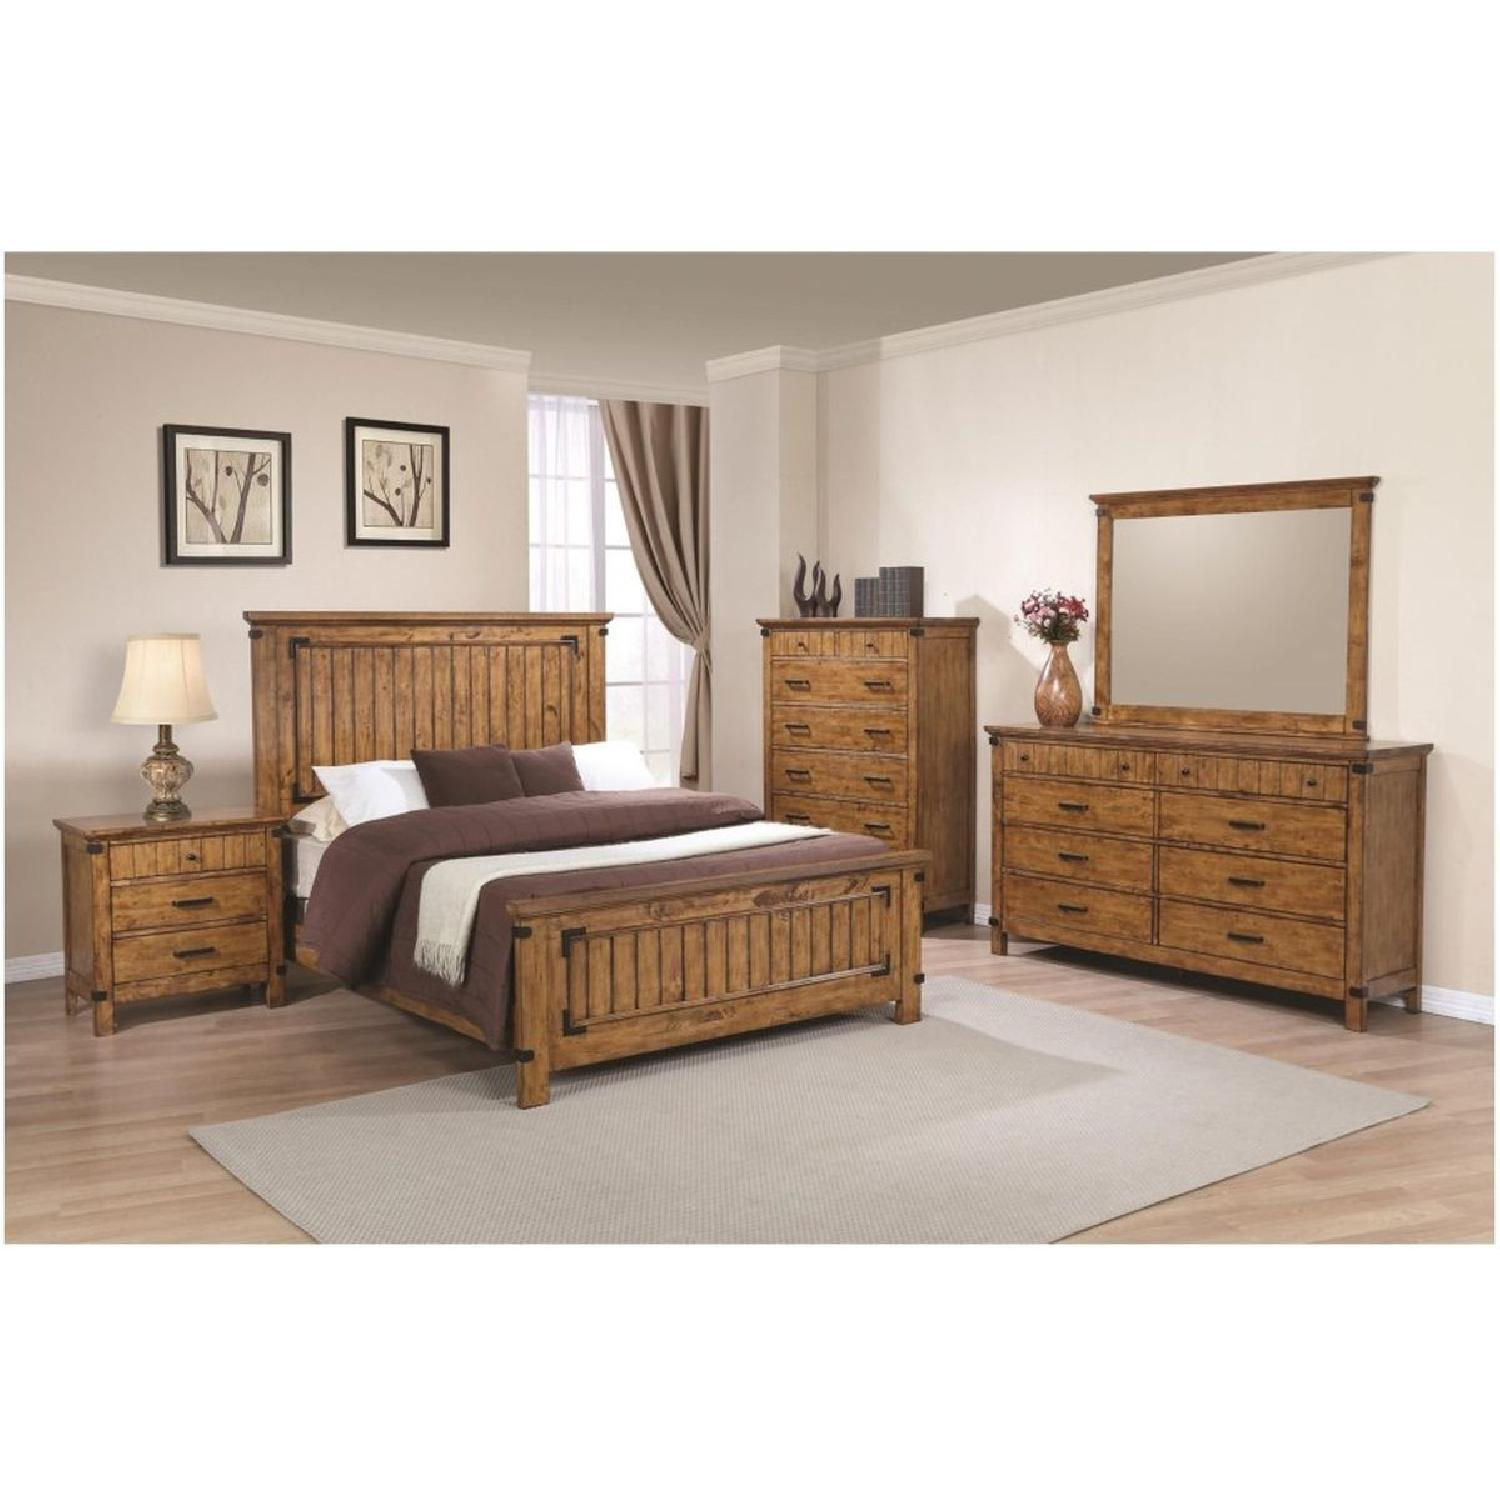 Rustic Style King Bed in Warm Honey Brown Finish - image-1